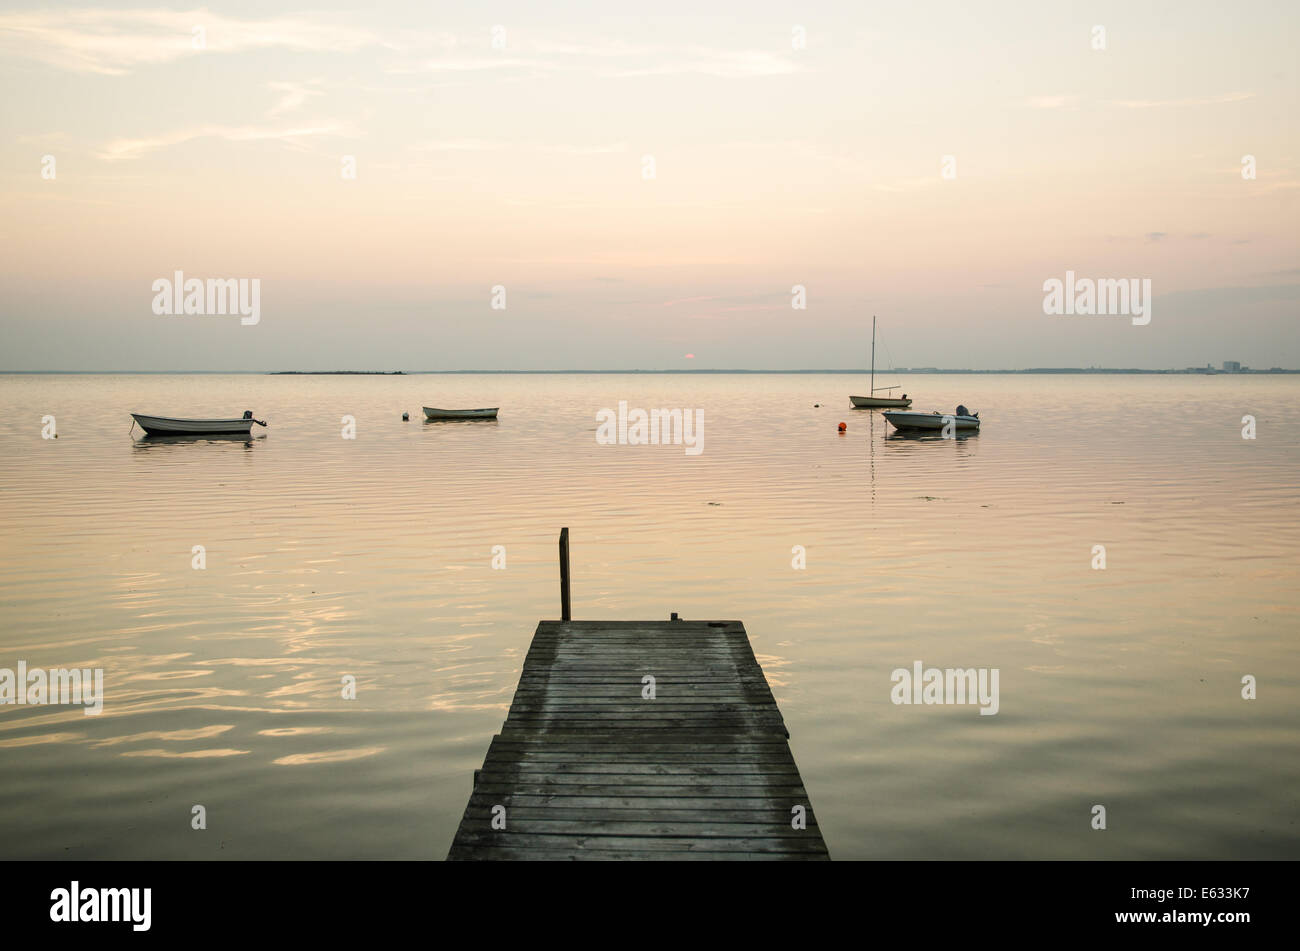 Old wooden jetty with anchored rowing boats at evening in a calm bay - Stock Image